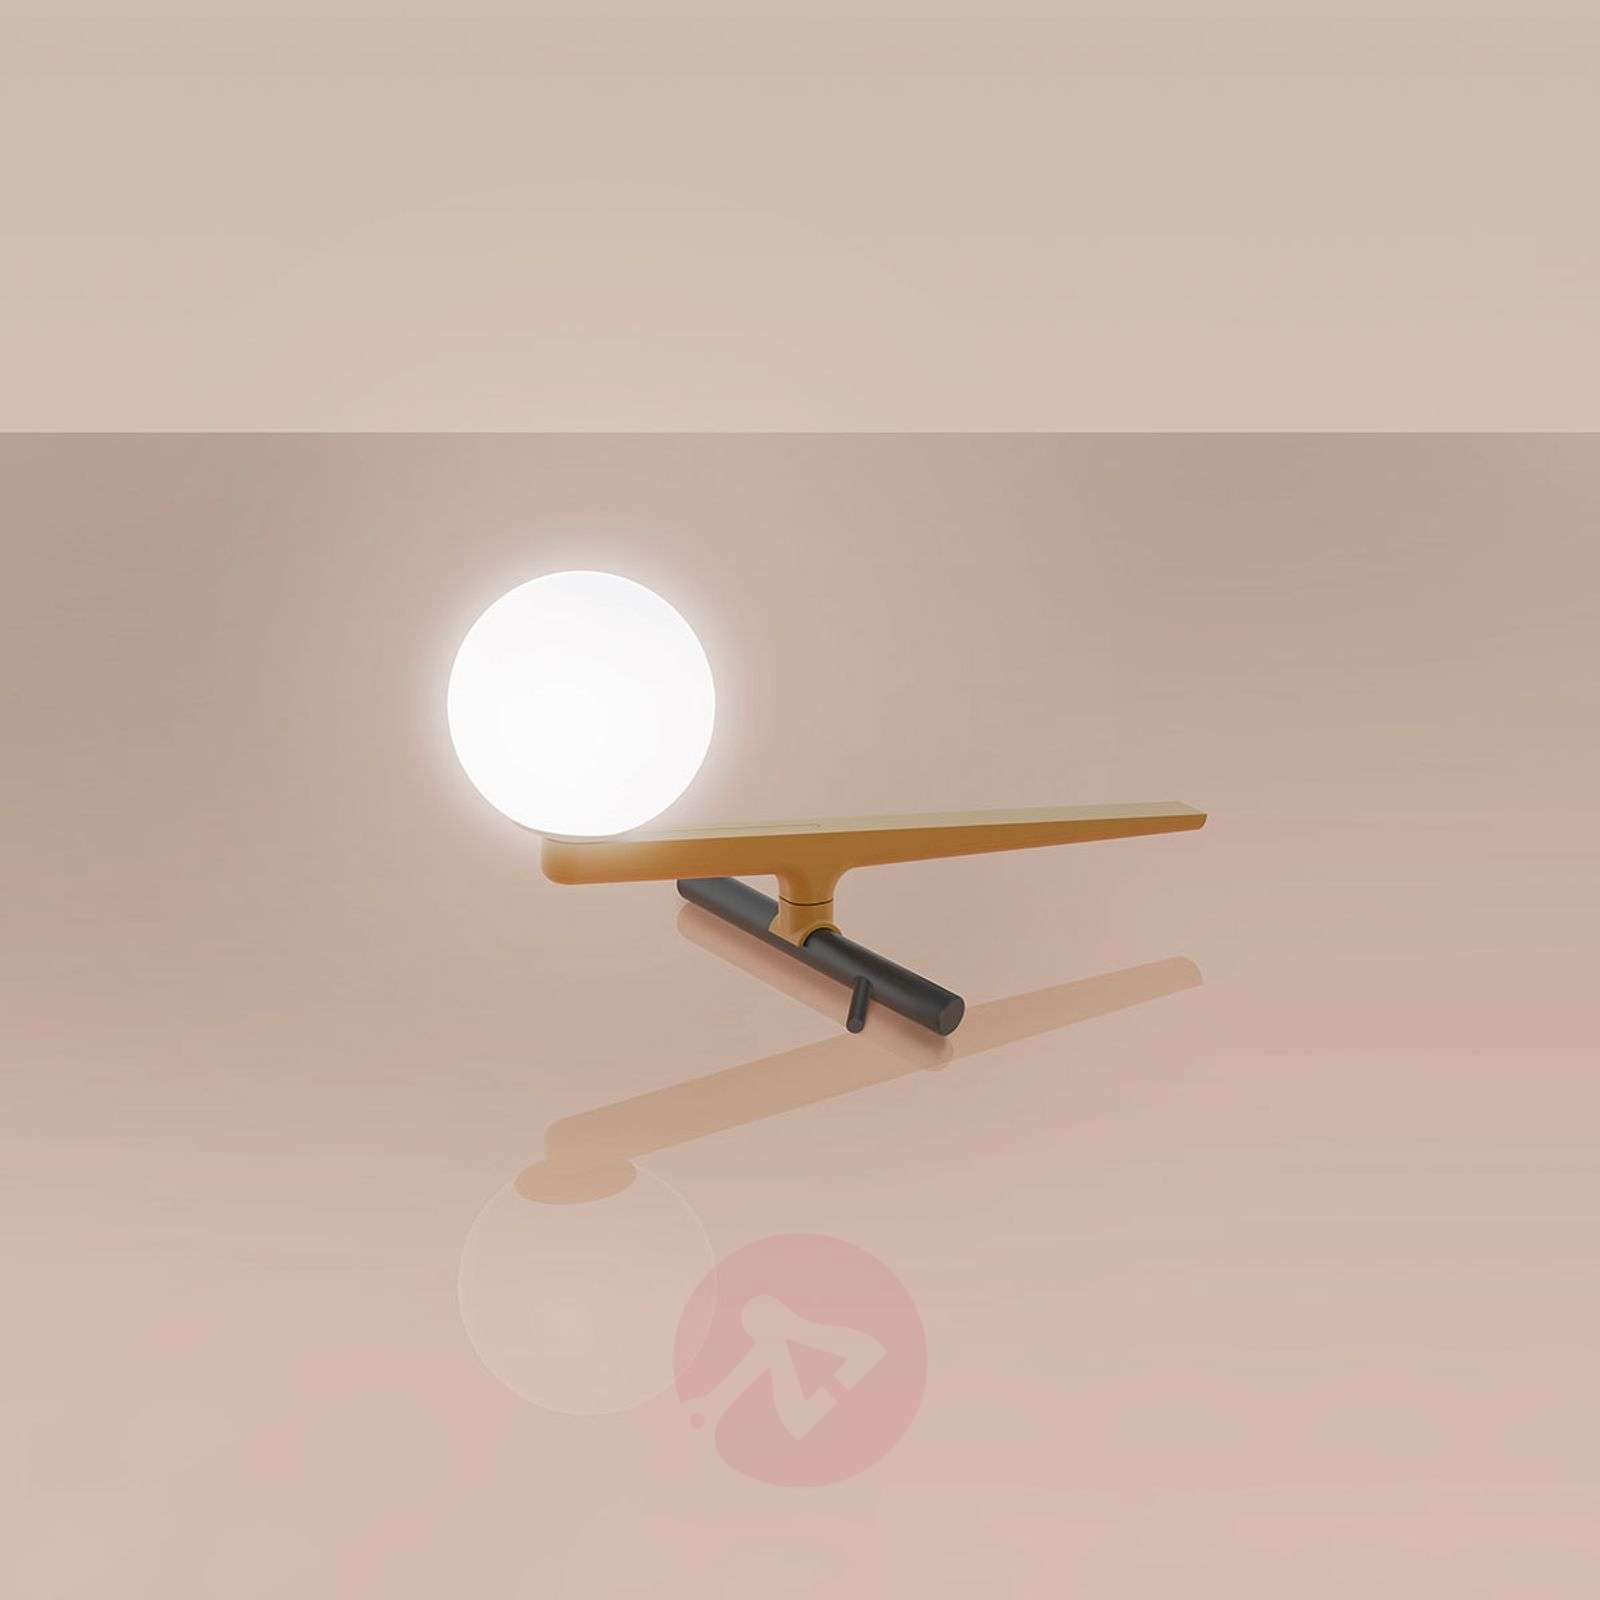 Artemide Yanzi LED table lamp with a dimmer switch-1060163-01